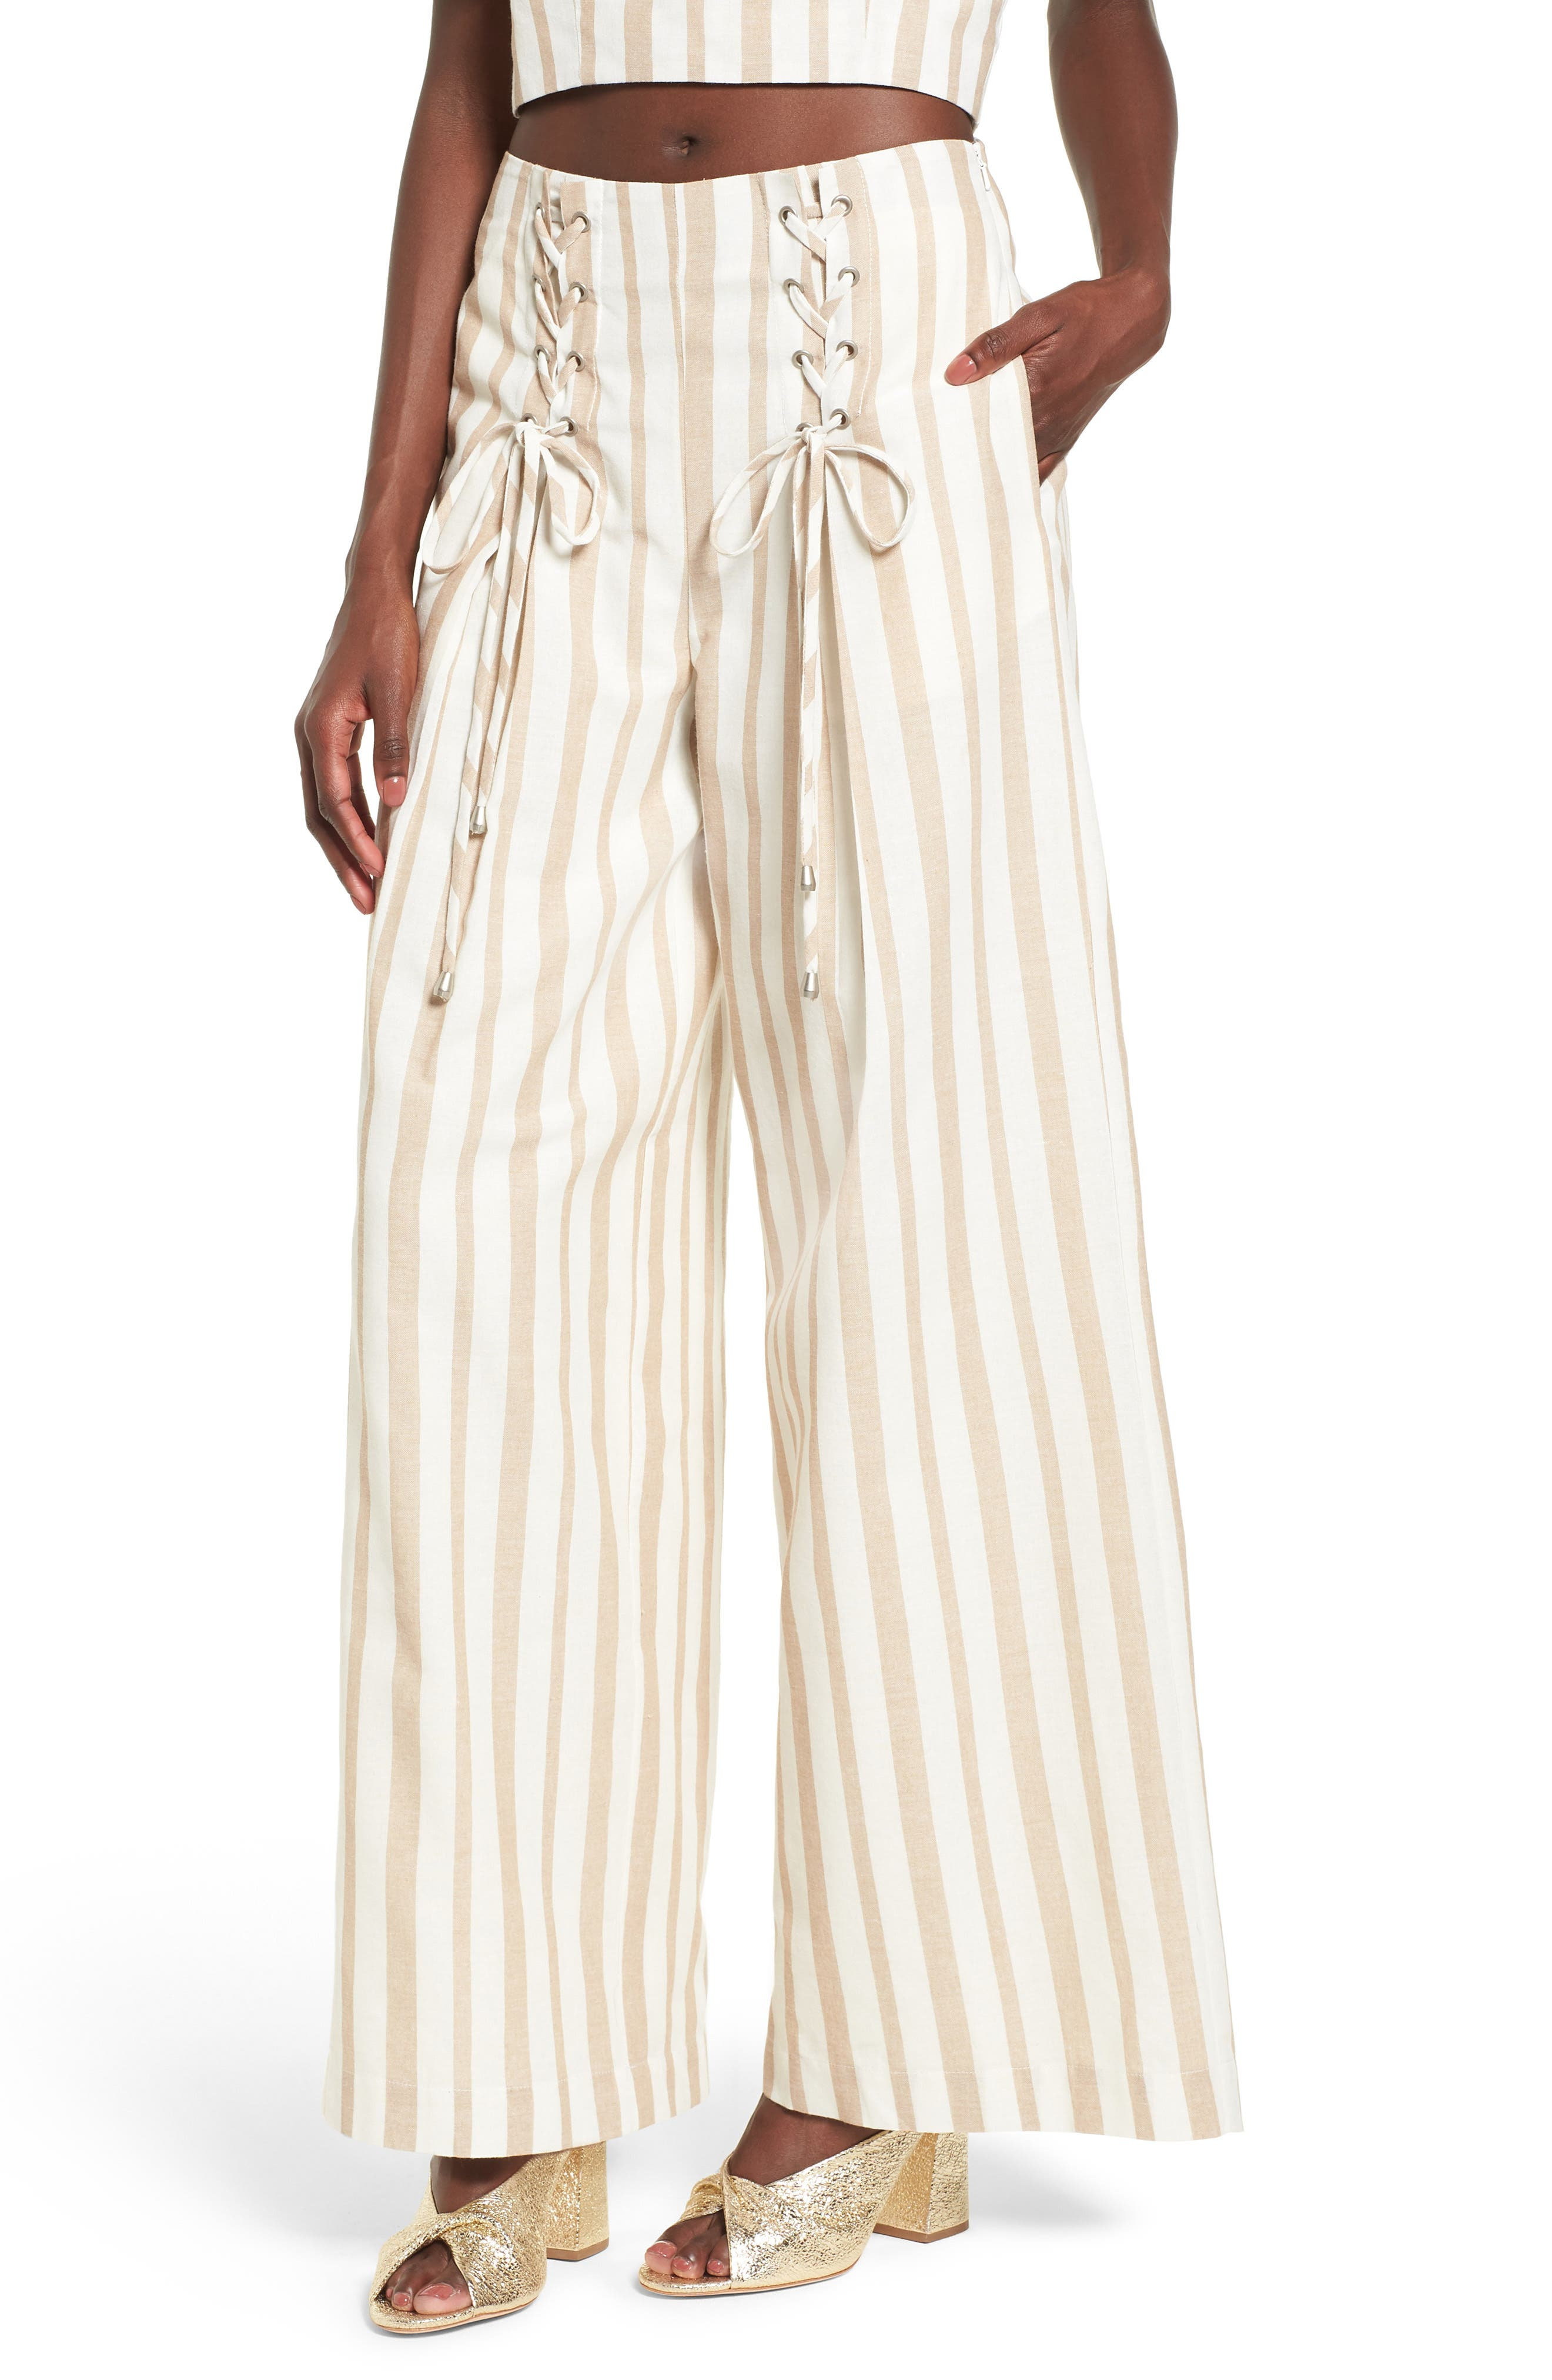 Chriselle x J.O.A. Lace-Up High Waist Wide Leg Pants,                             Main thumbnail 1, color,                             250